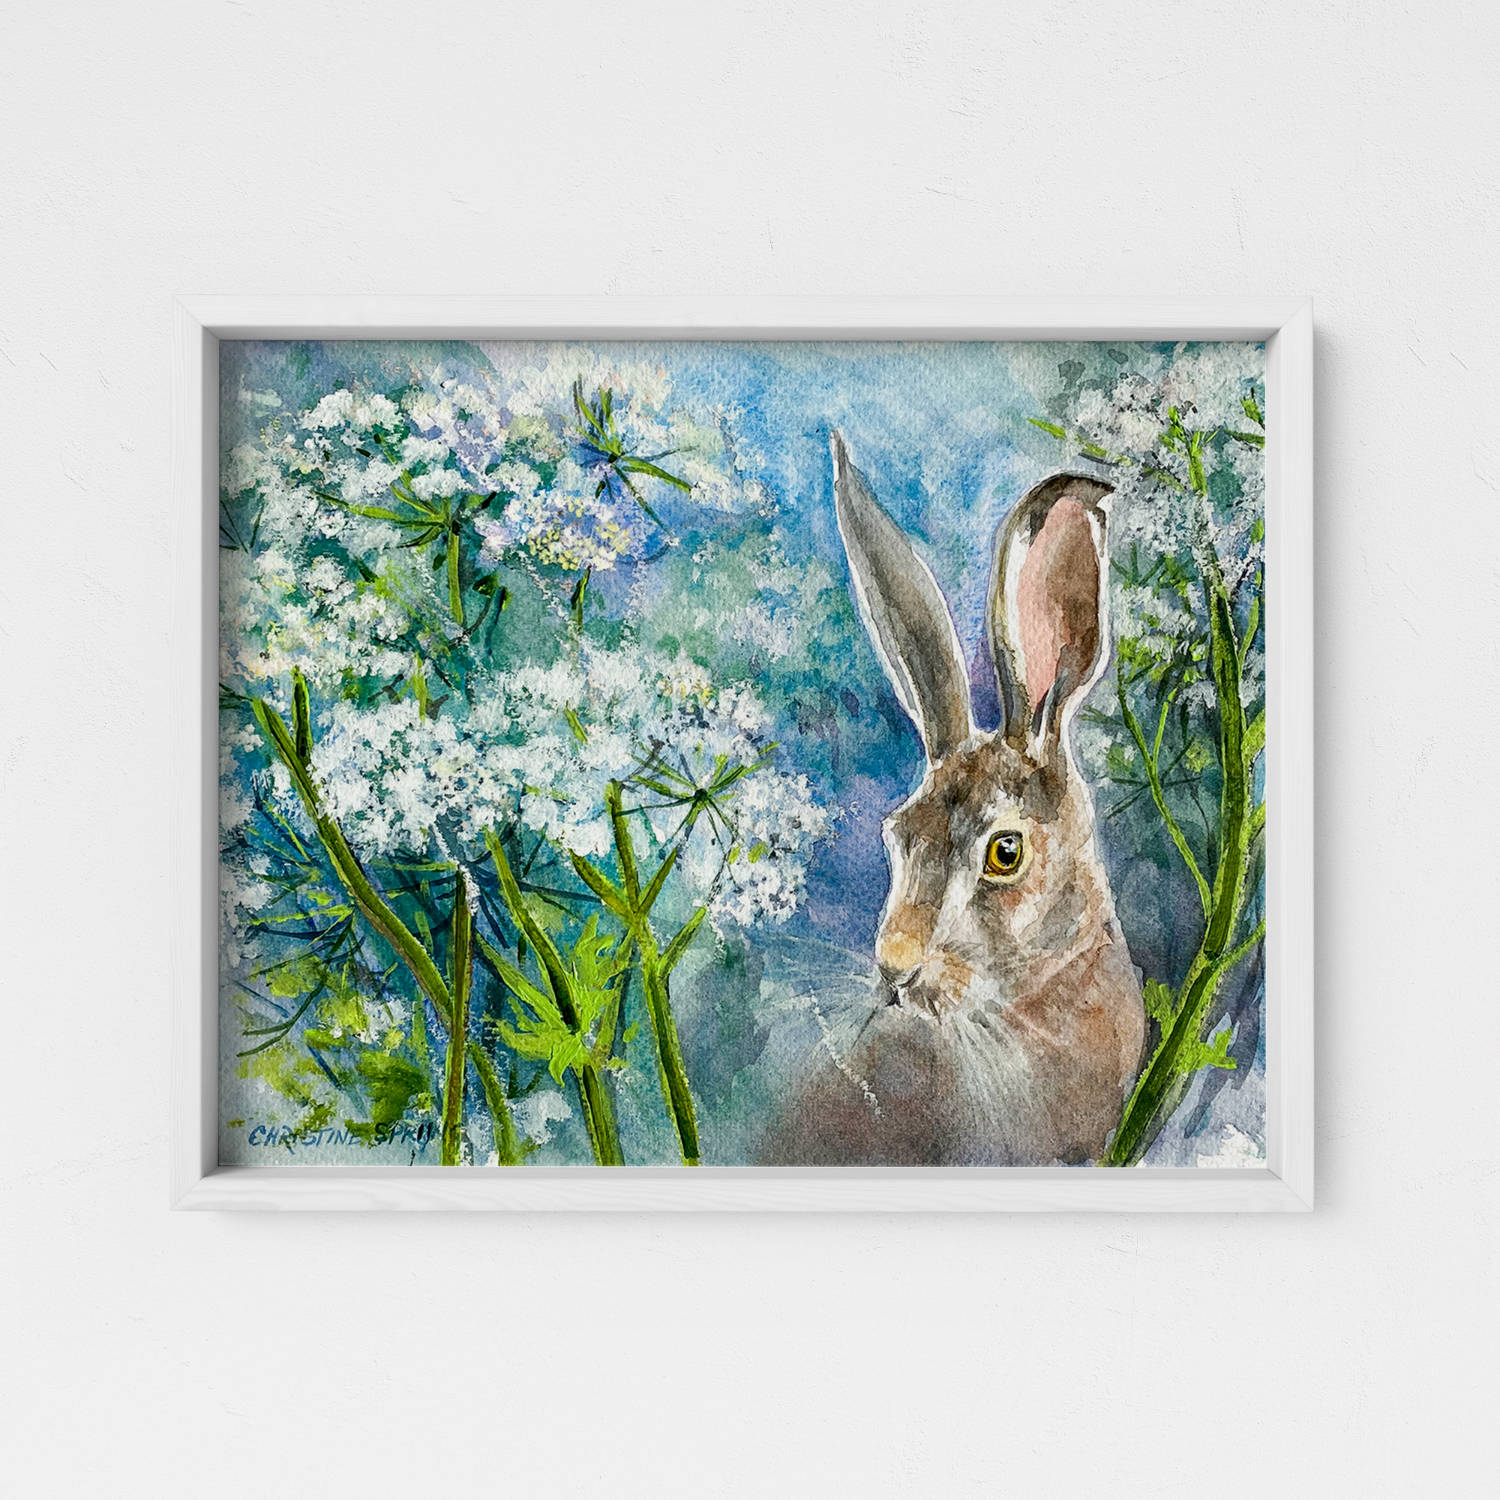 Christine Spring March Hare Mixed Media 280x195mm £145